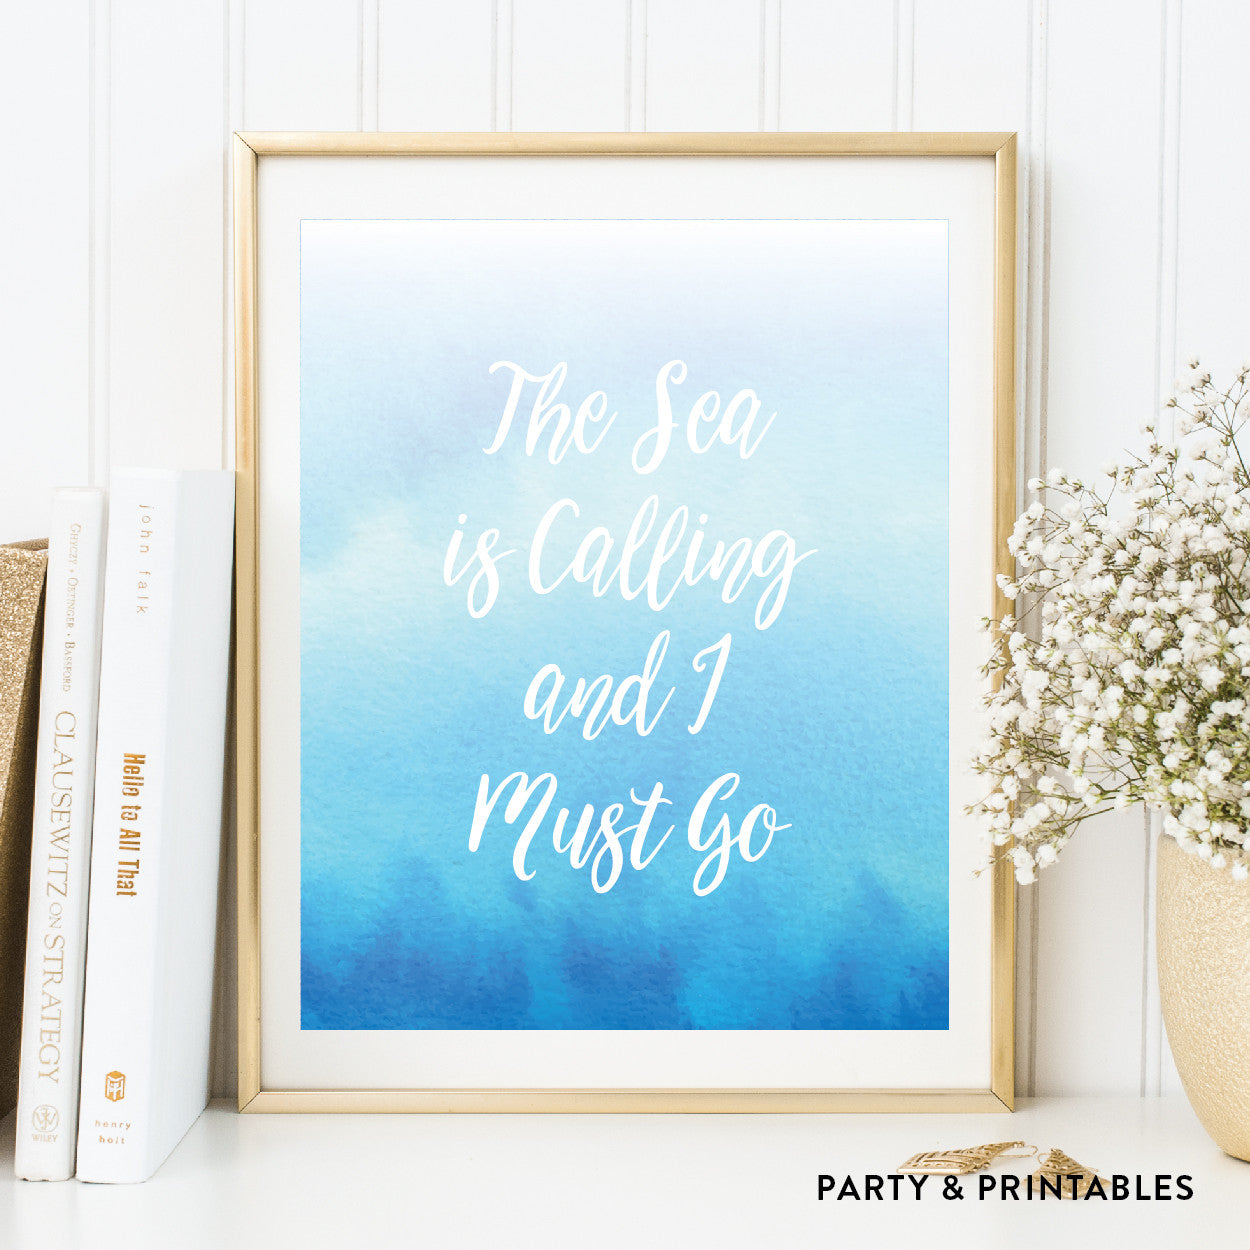 The Sea Is Calling And I Must Go Wall Art / Instant Download (WA.25), photo booth props - Party and Printables